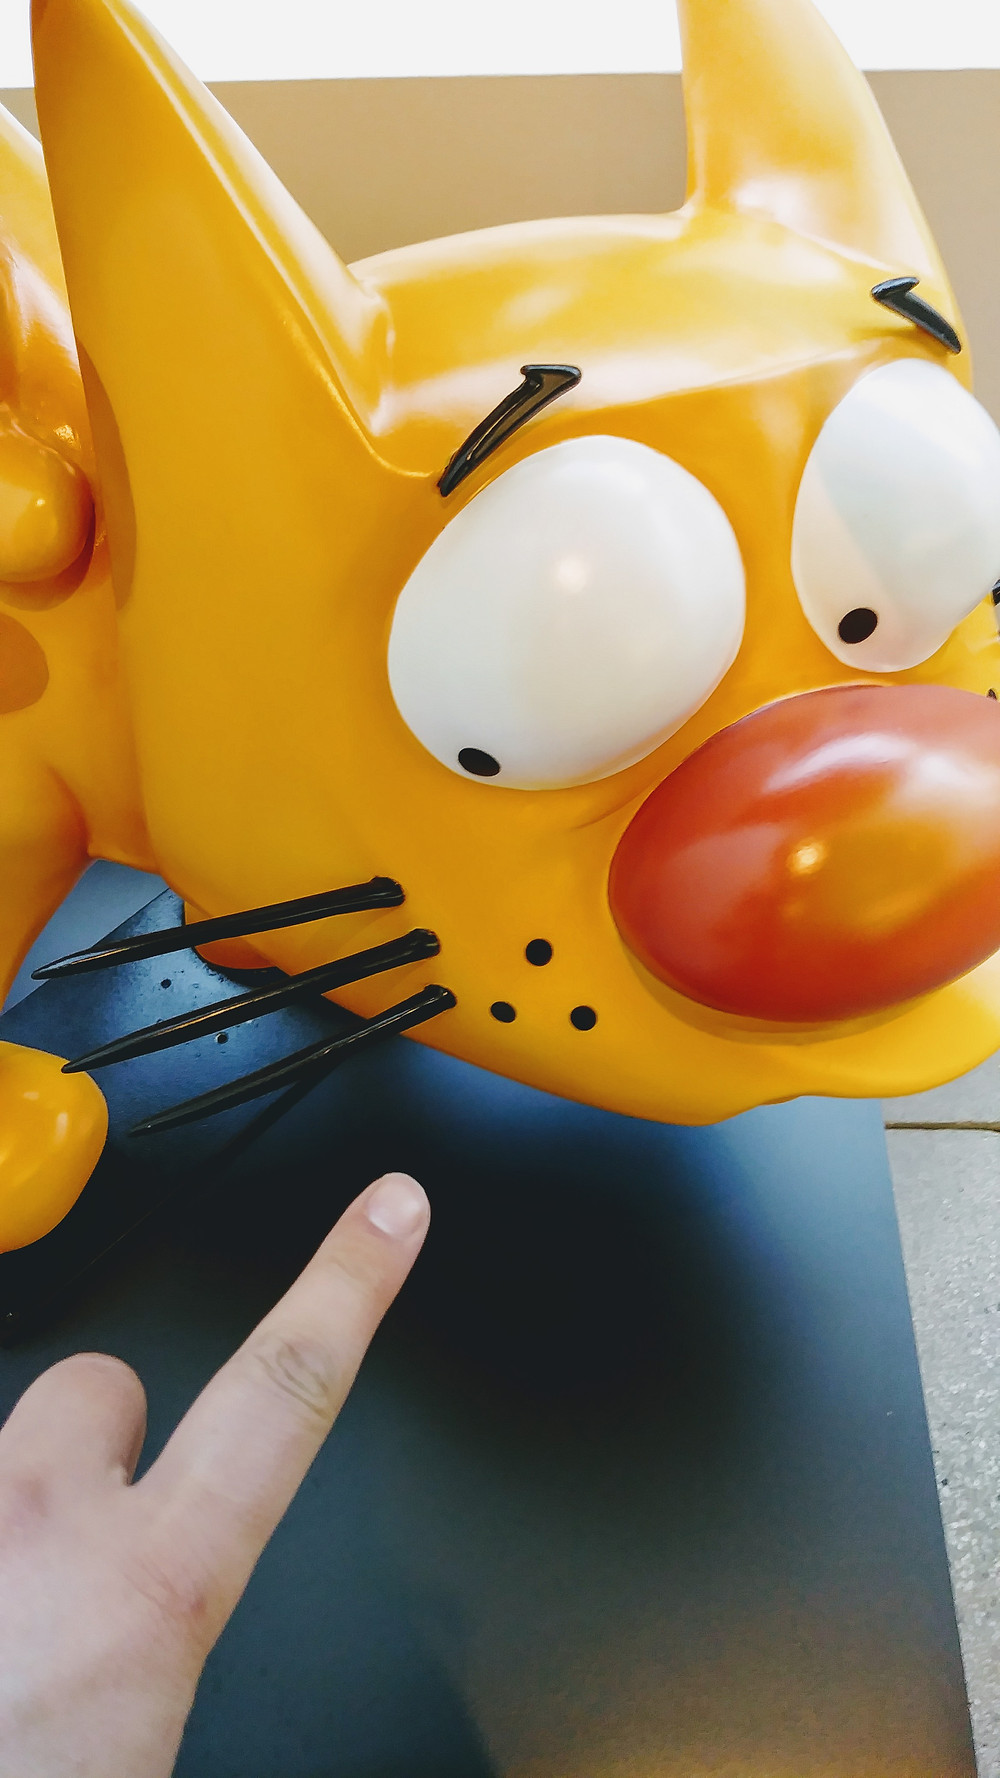 Sculpture of Catdog from Nickelodeon